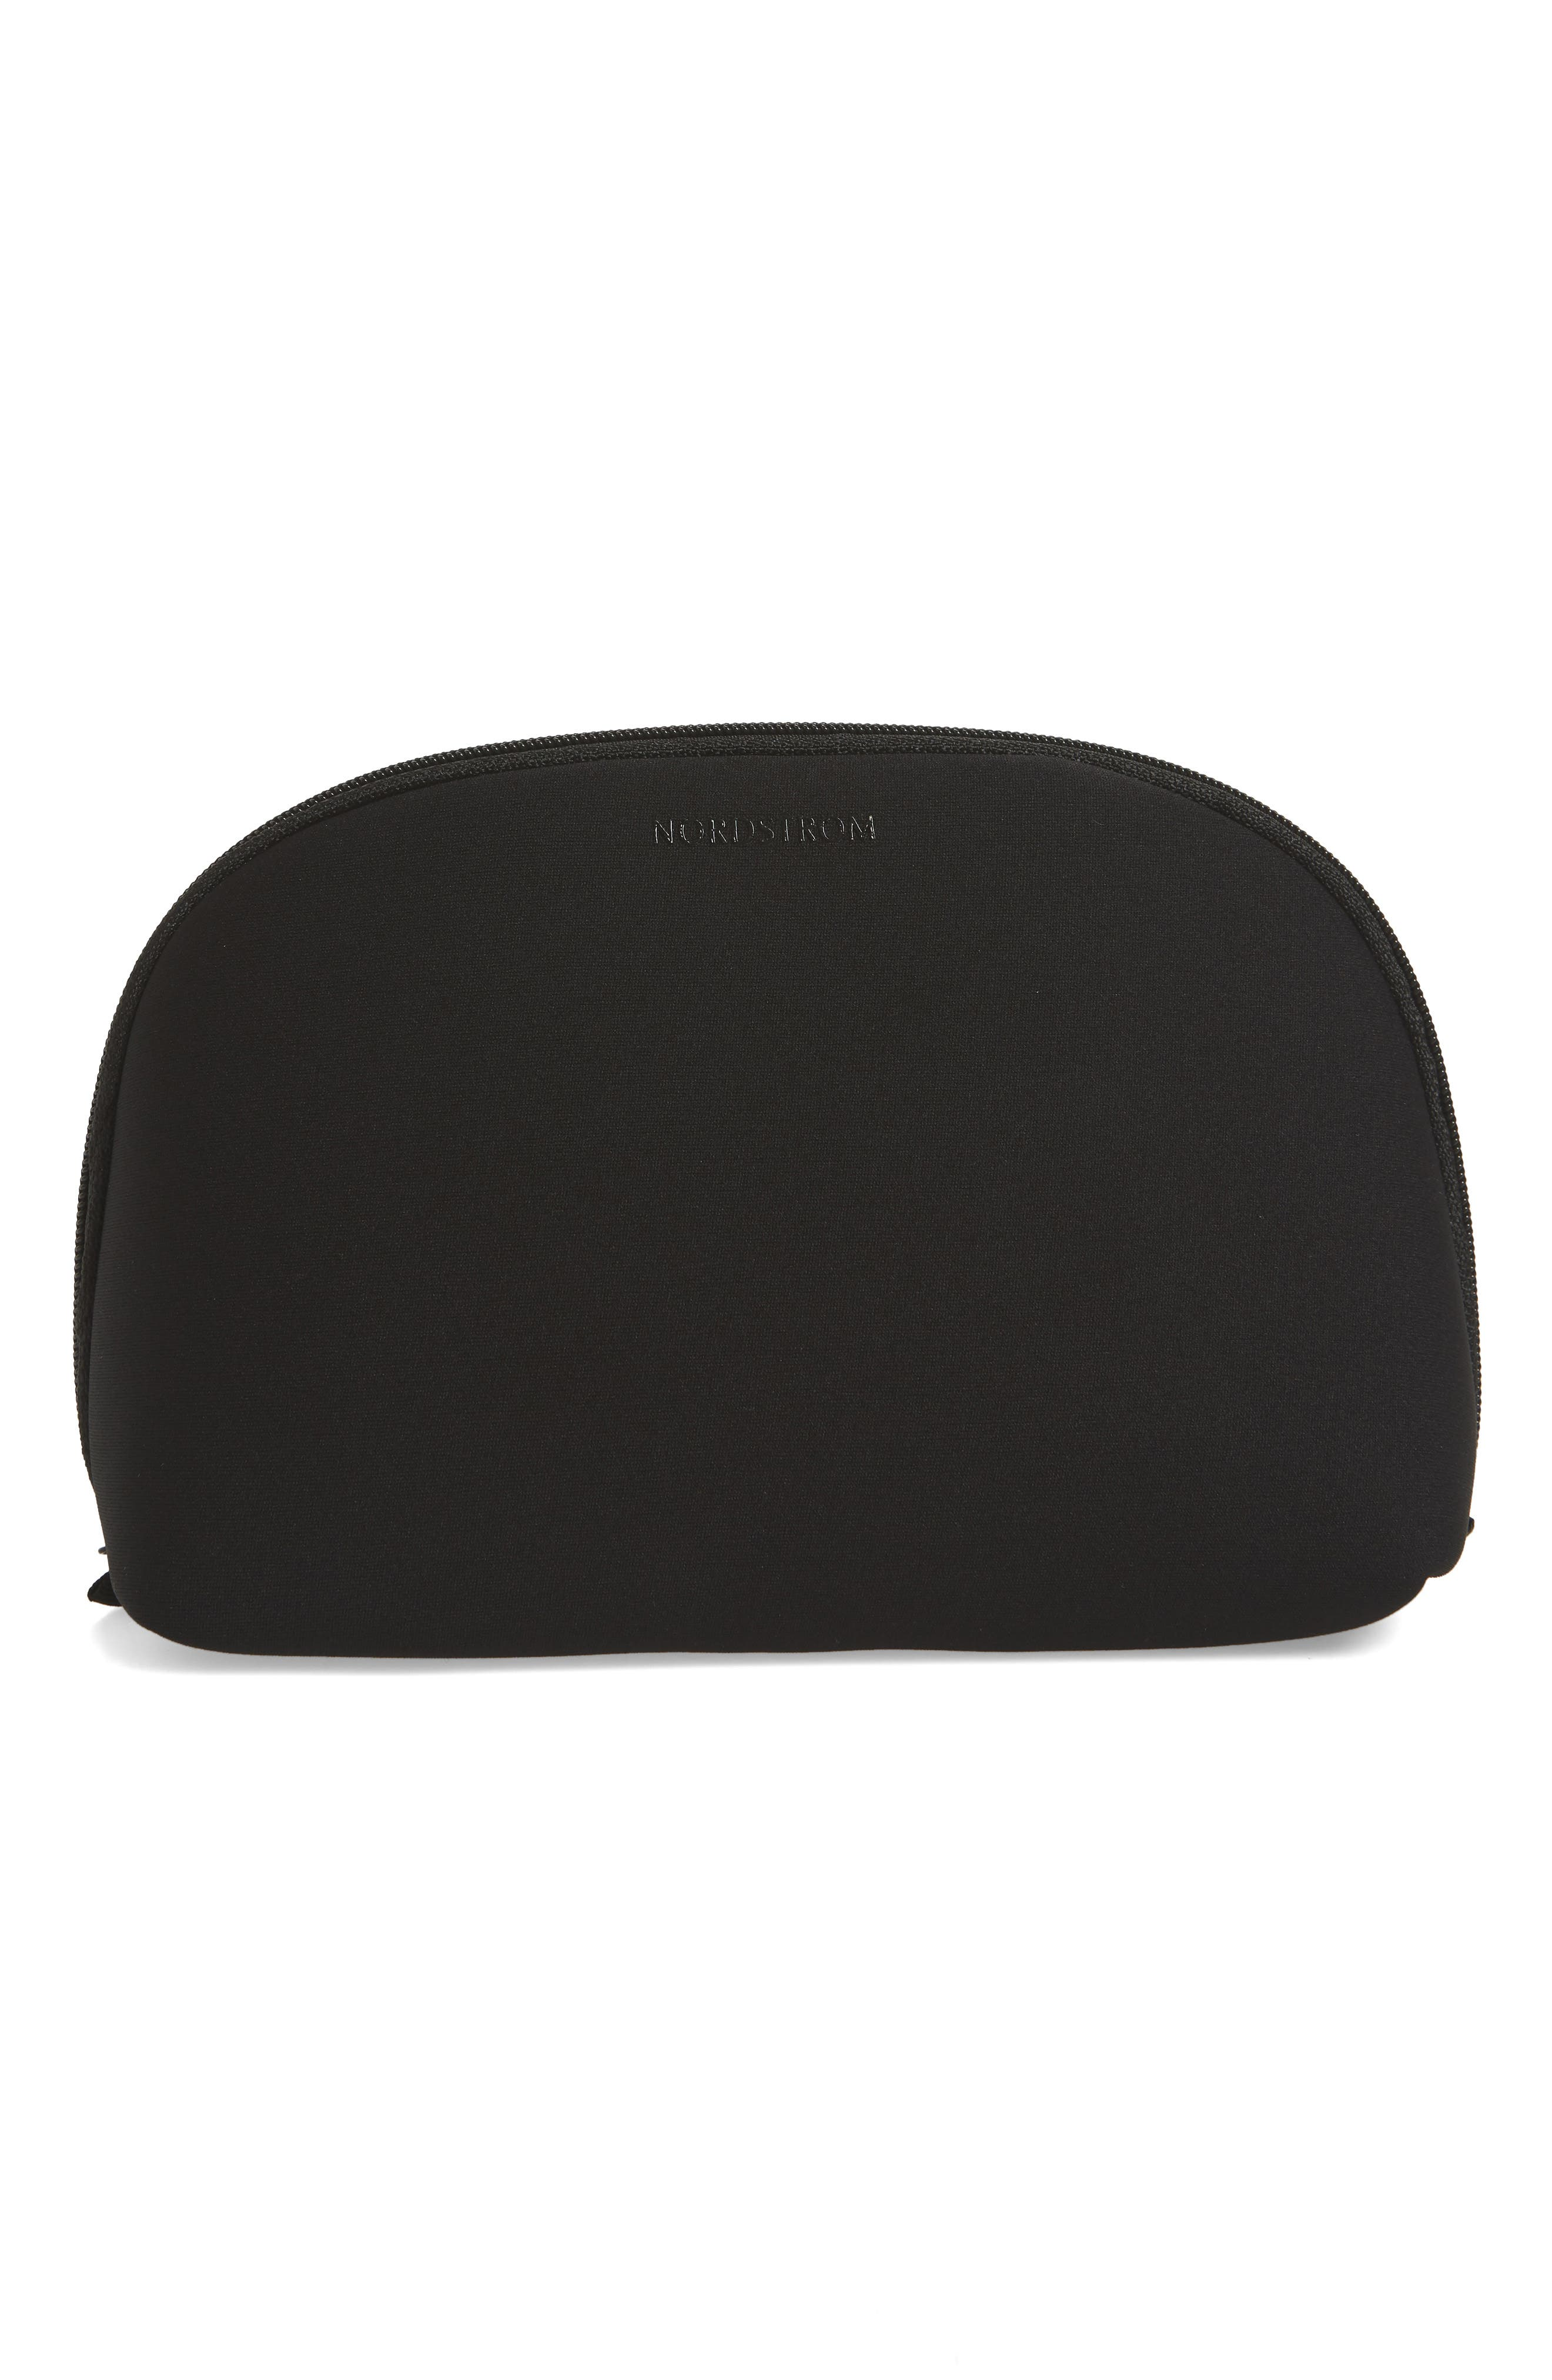 Curved Cosmetic Bag,                             Main thumbnail 1, color,                             BLACK